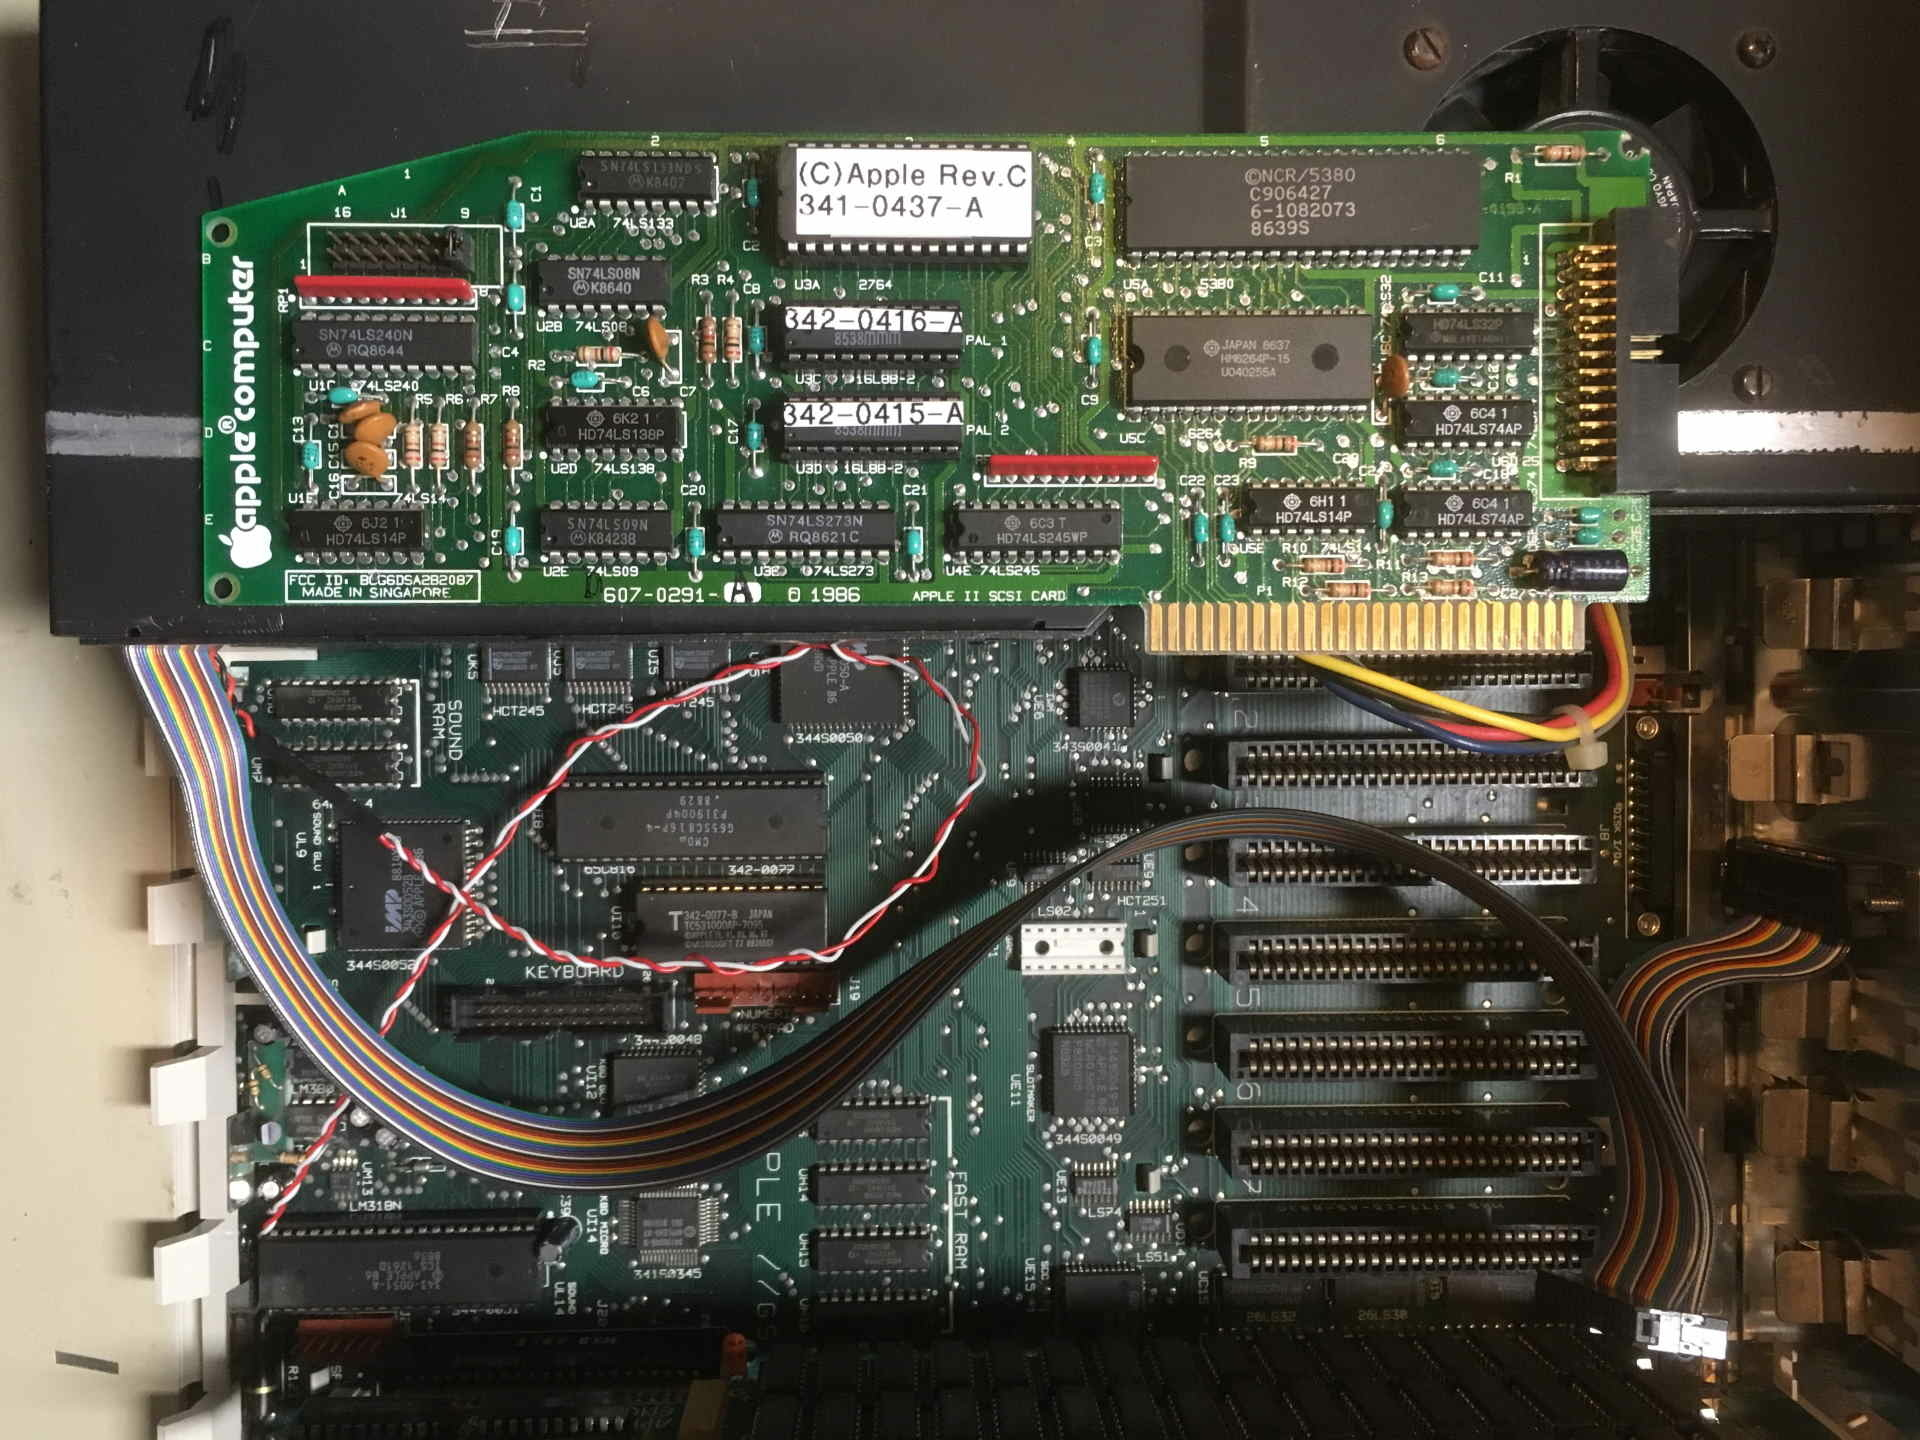 Apple ][ Rev. C SCSI card with Vulcan PSU adapted to hold a SCSI drive